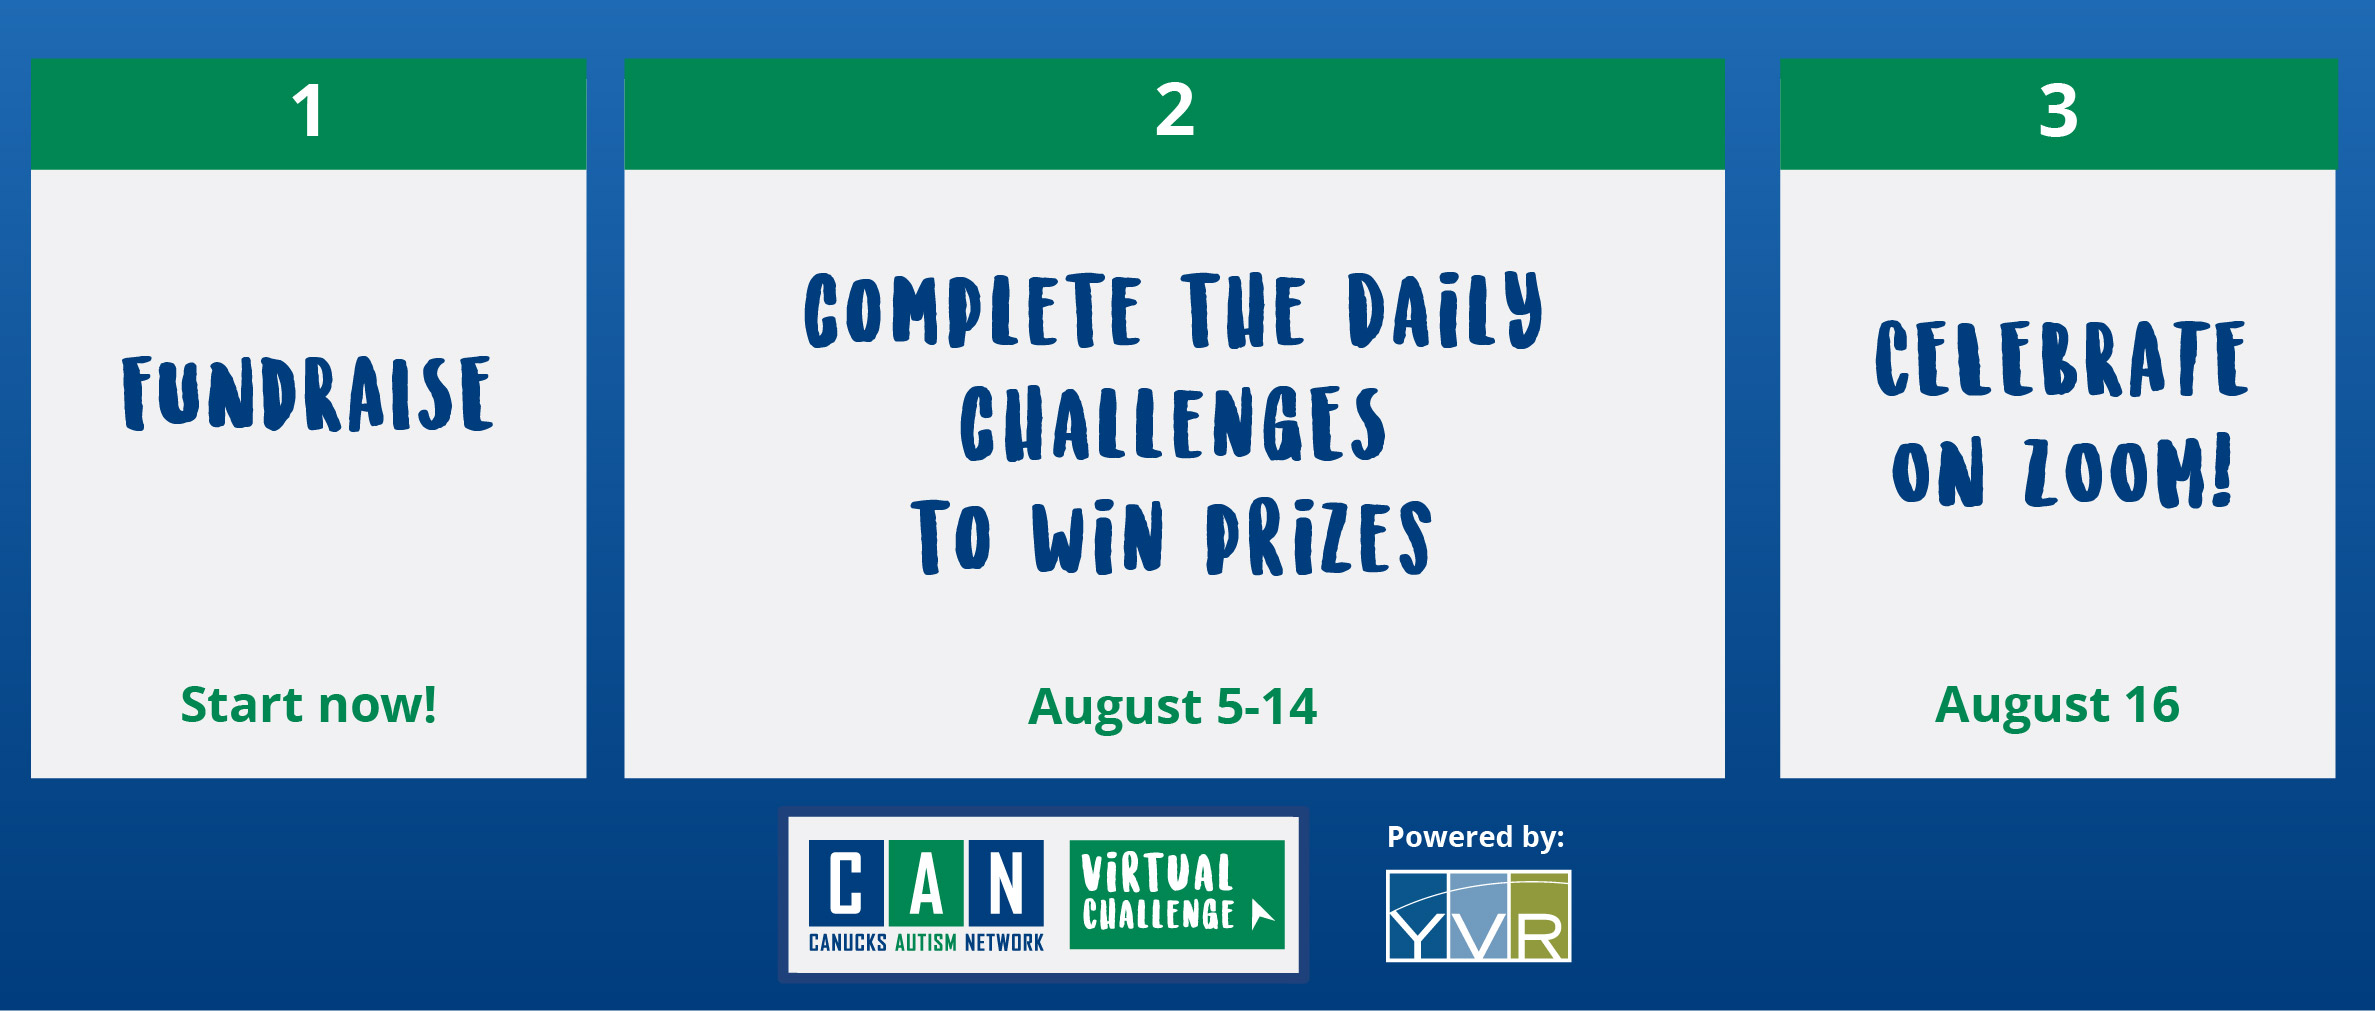 can-virtual-challenge-participate.jpg